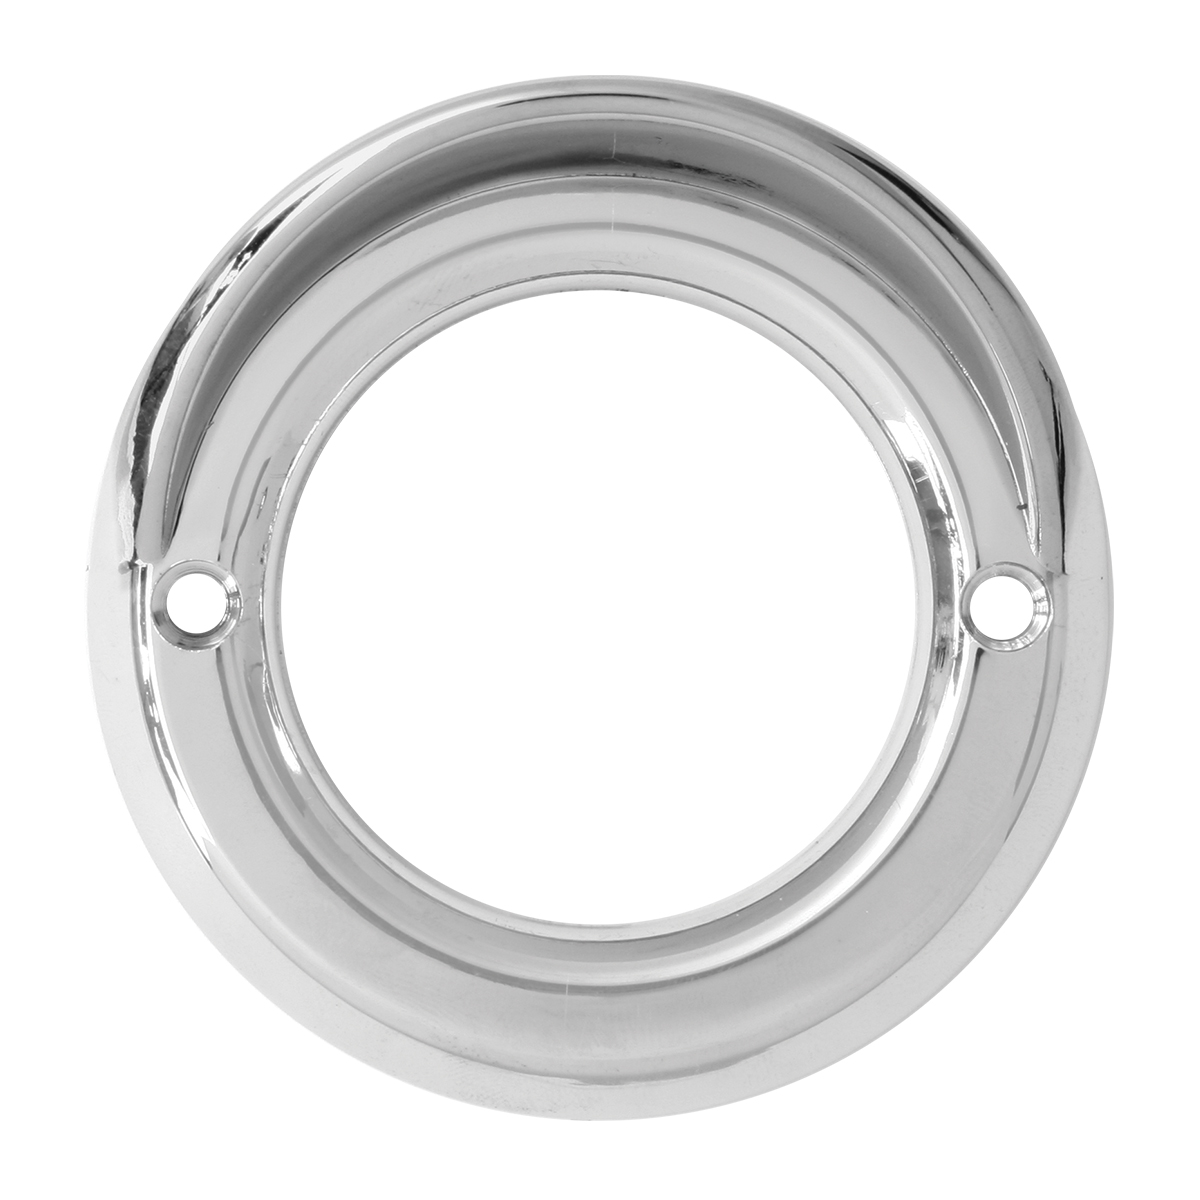 "80726 Chrome Plastic Grommet Cover w/ Visor for 2"" Round Light"